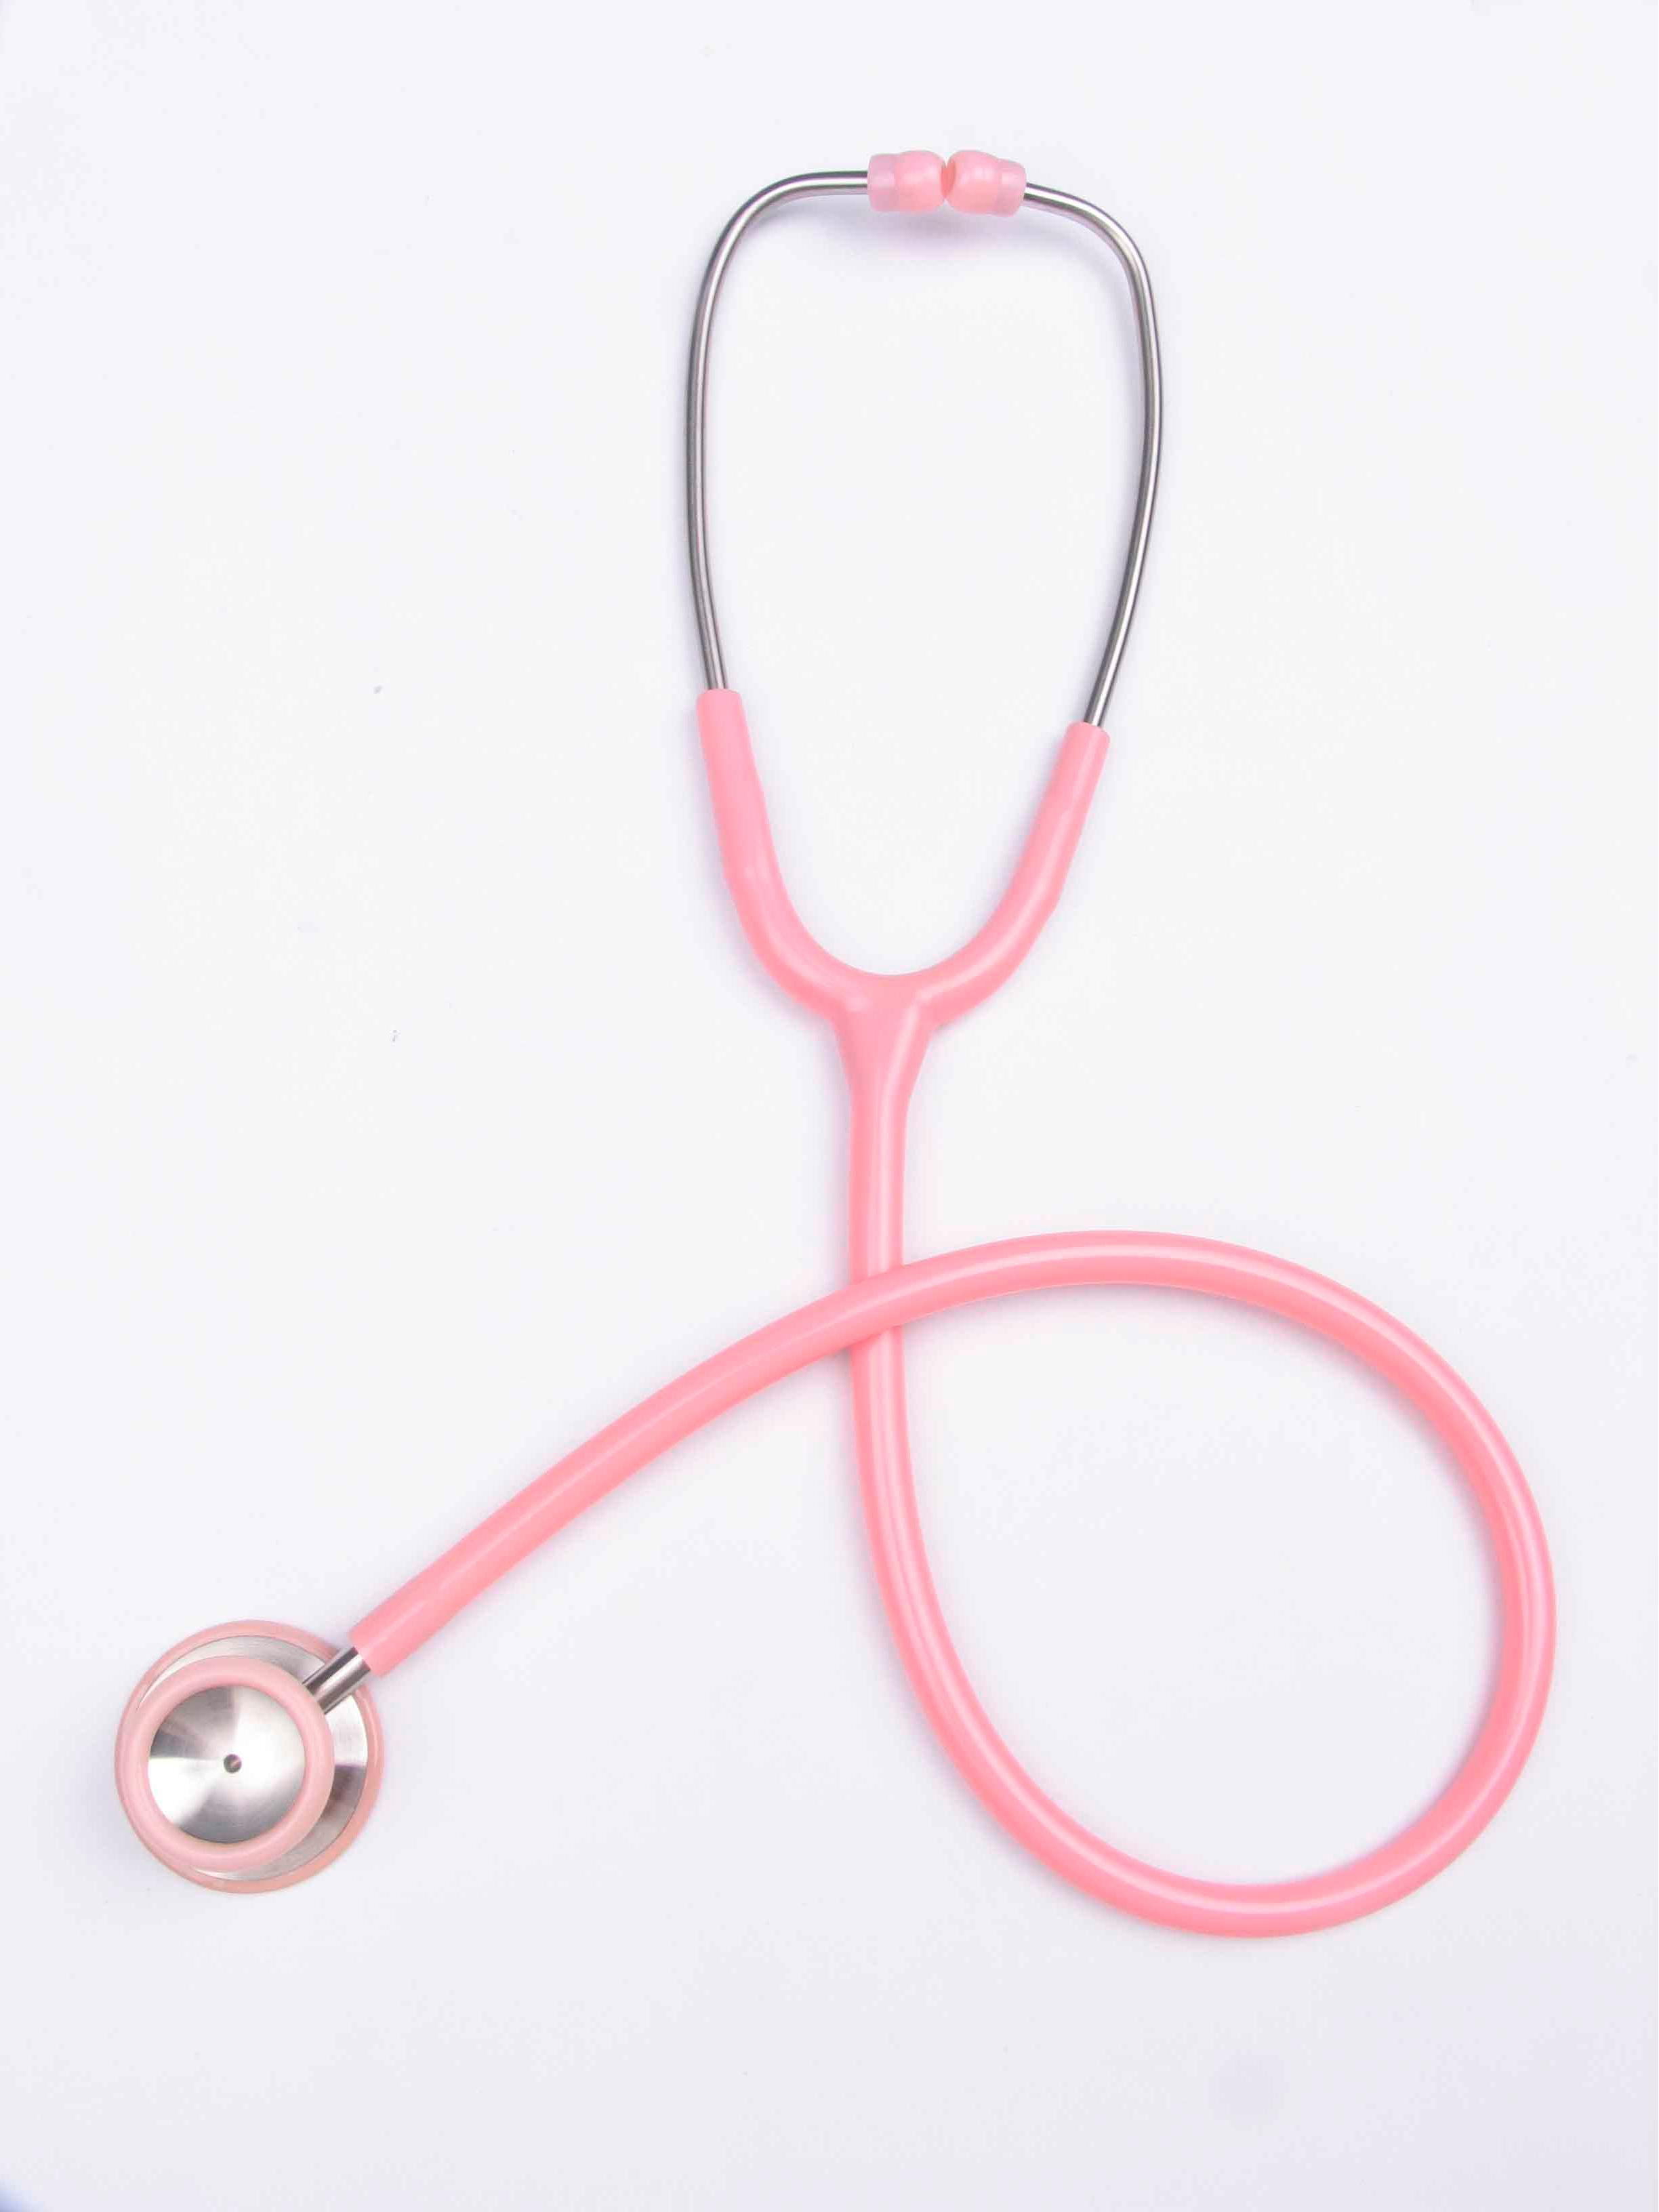 China Classic Stainless Steel Stethoscope (Pediatric ...